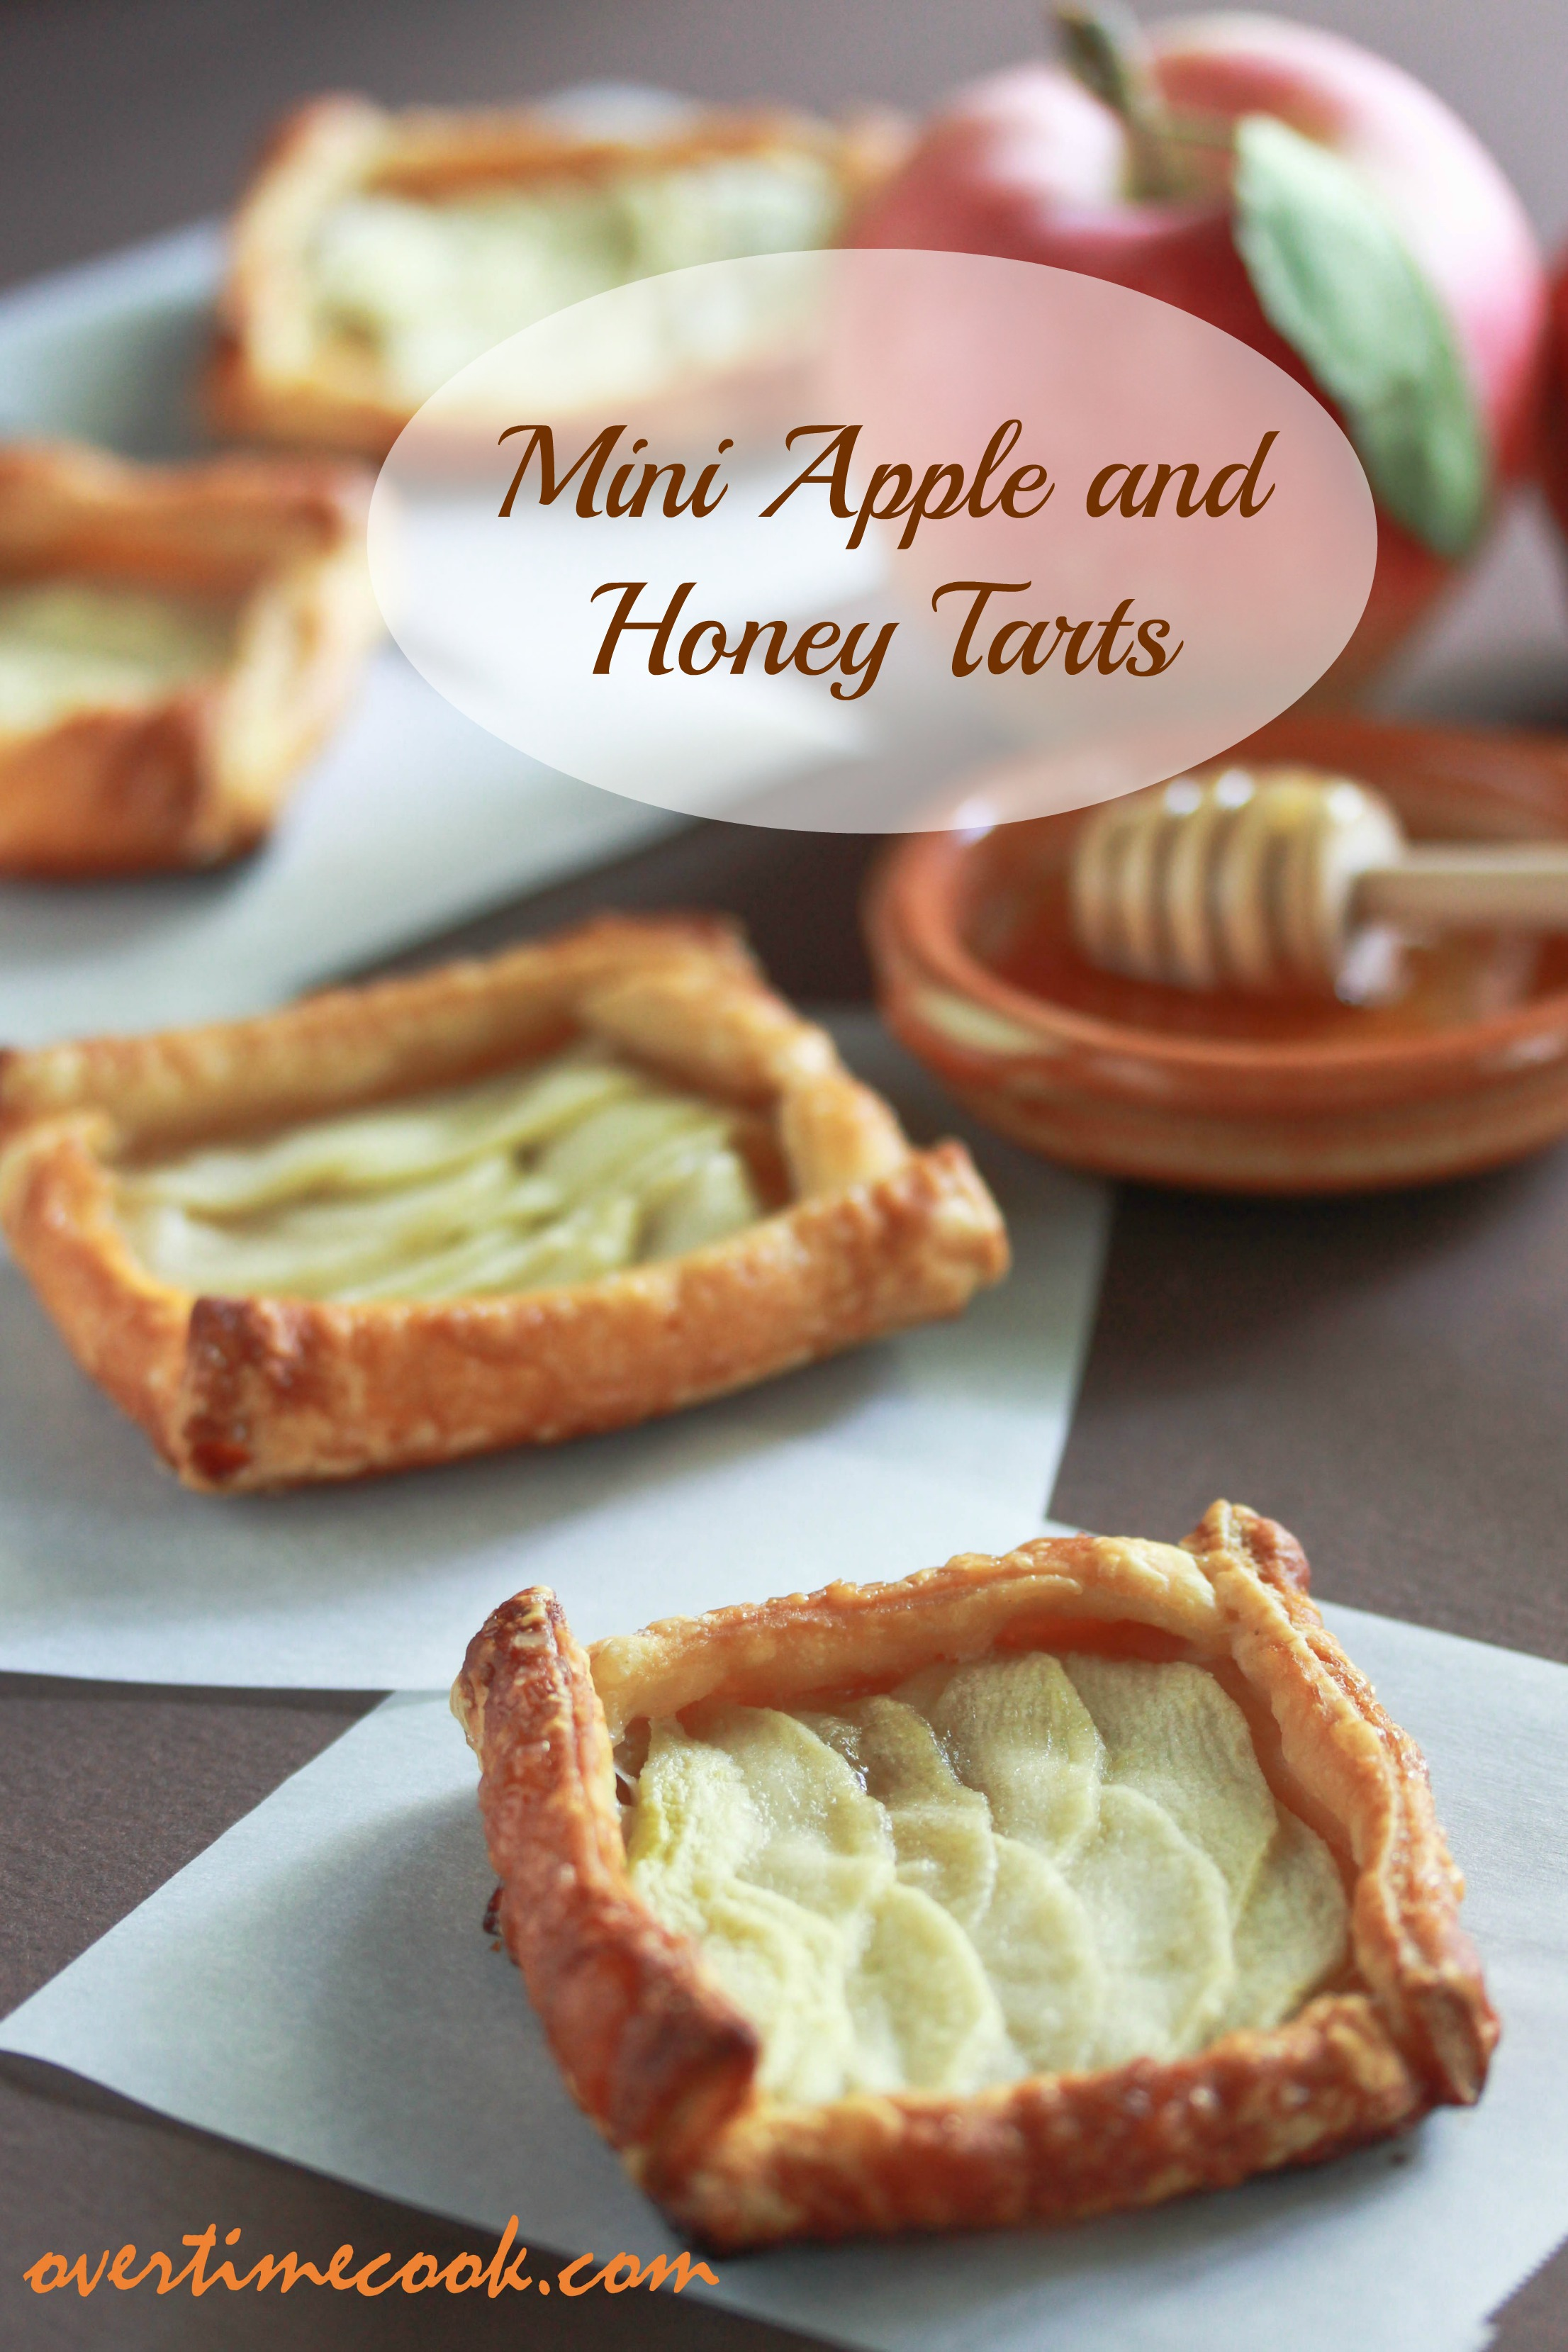 Mini Apple and Honey Tarts on Overtime Cook